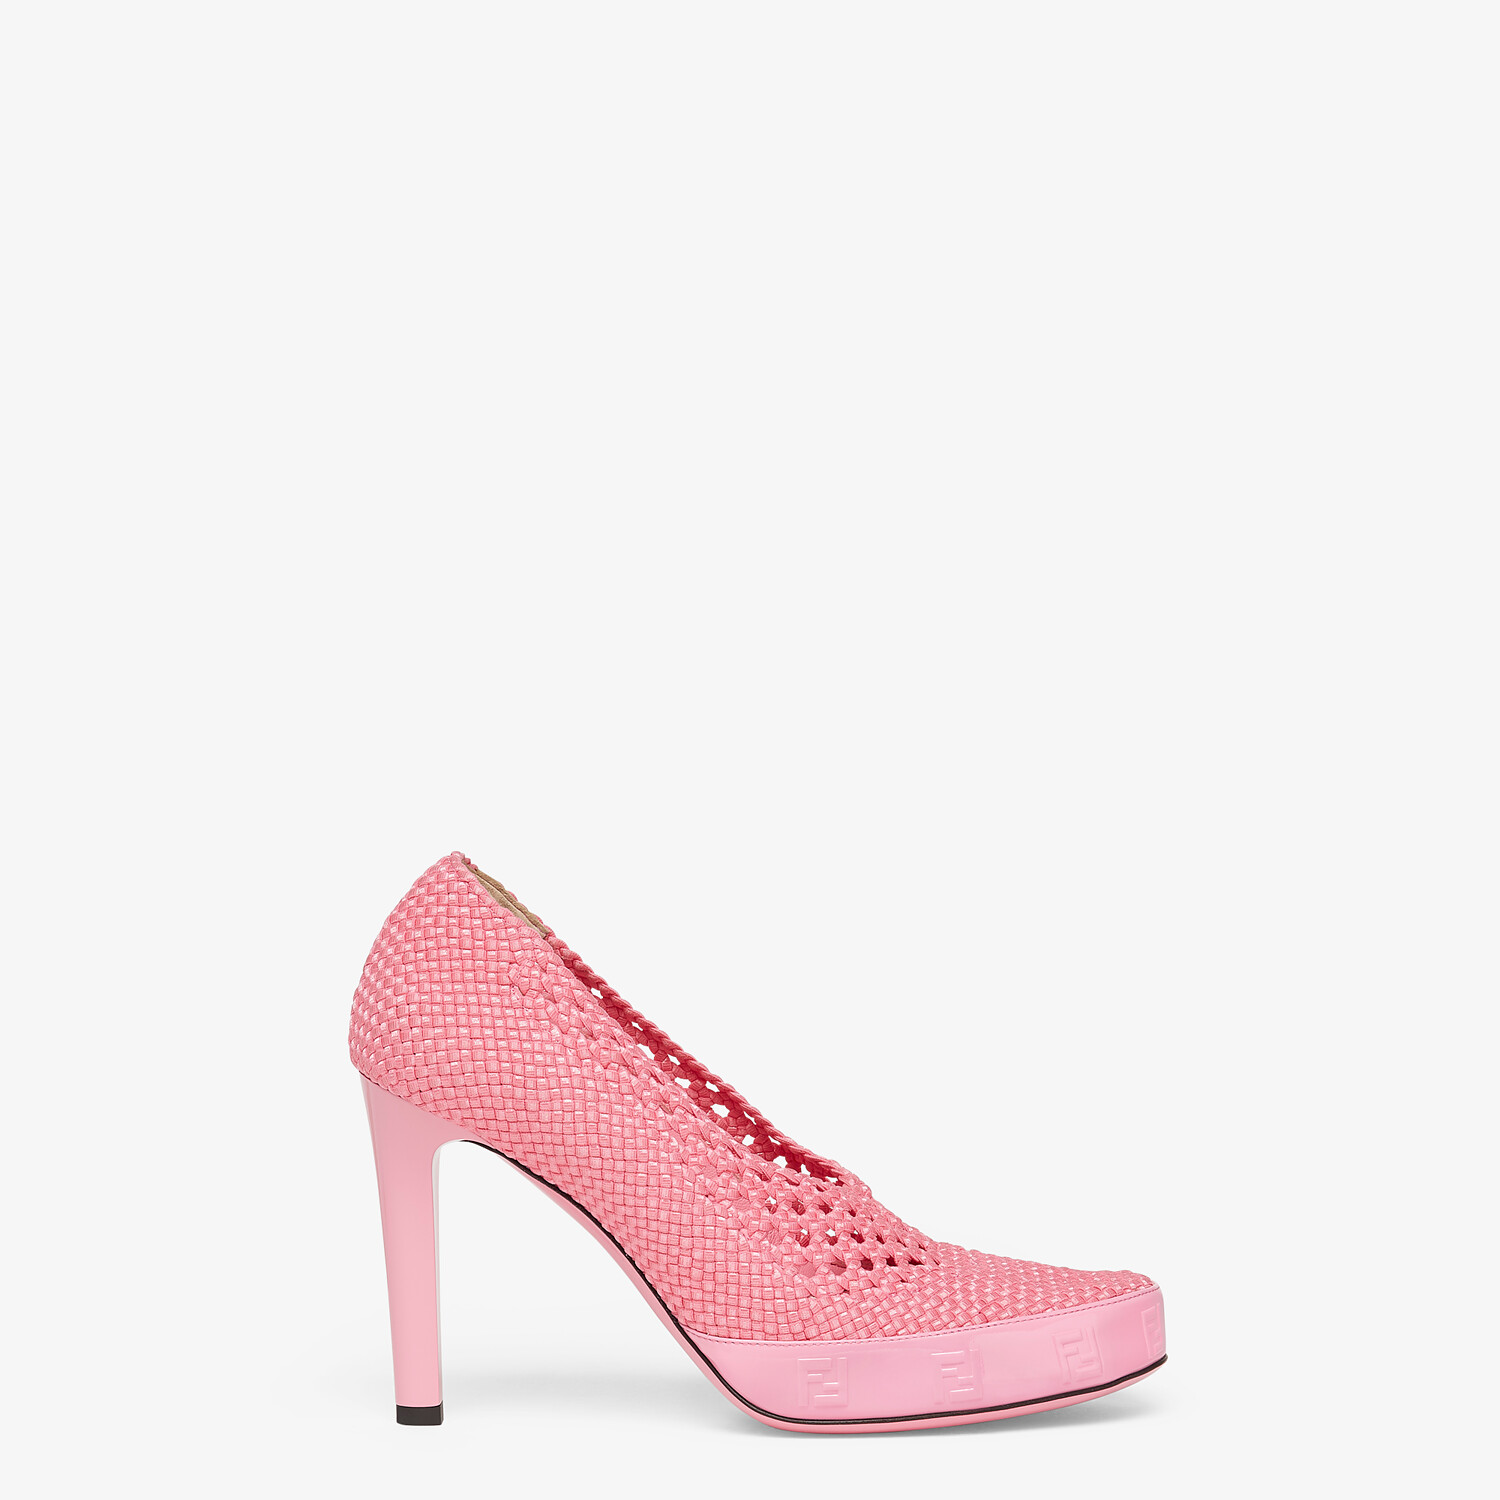 FENDI FENDI REFLECTIONS PUMPS - Elasticated pink lace pumps - view 1 detail